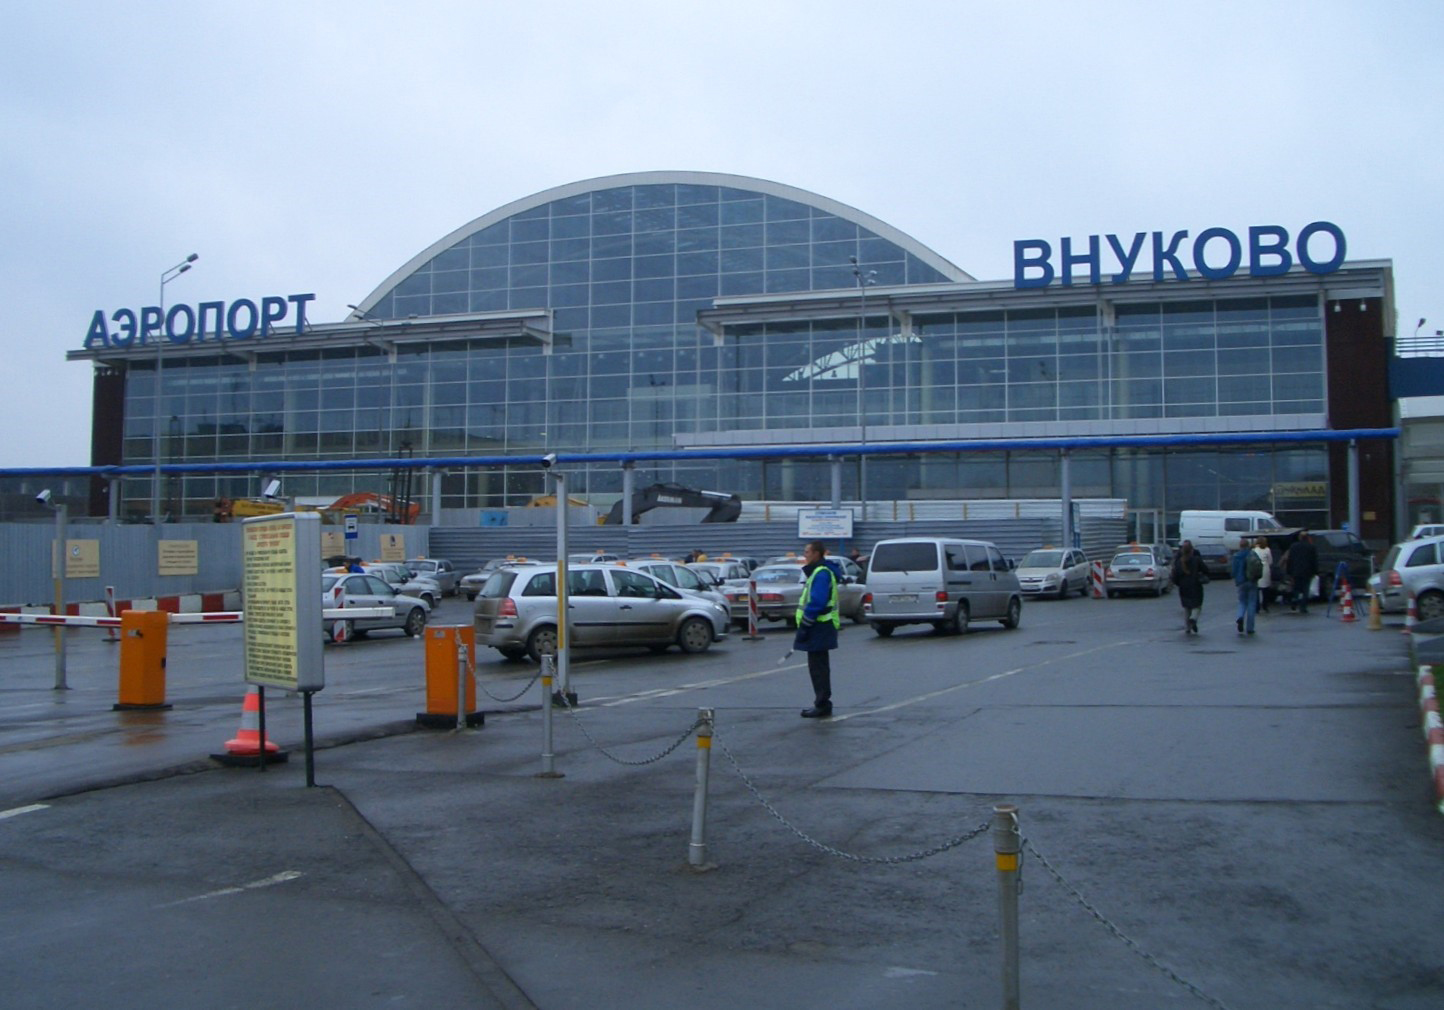 Vnukovo International Airport Moscow